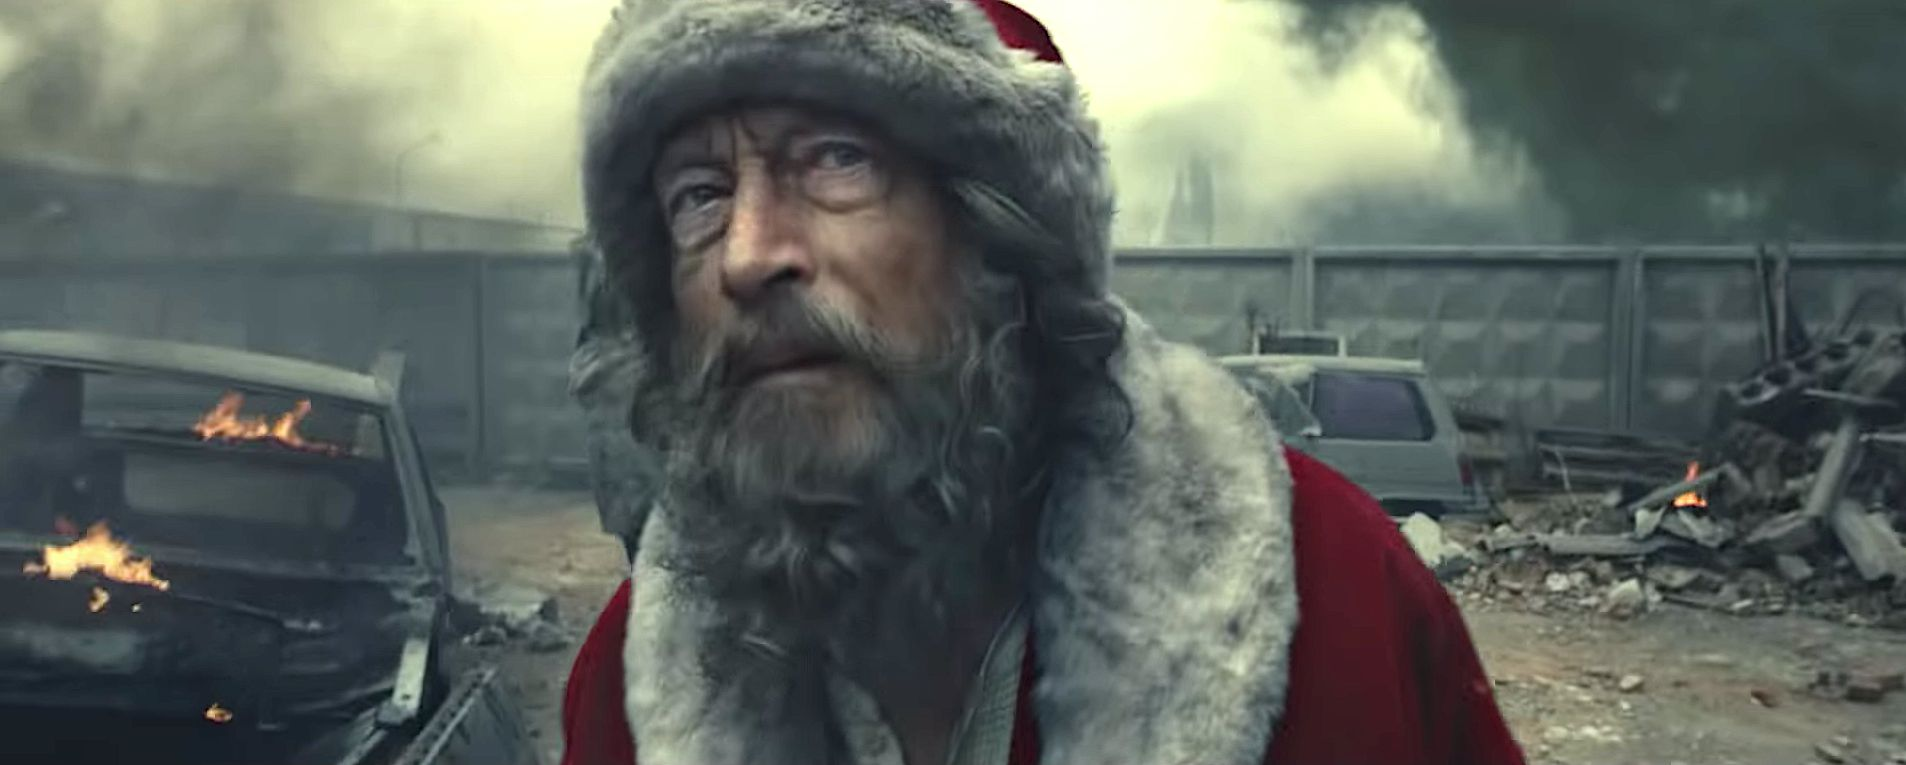 Harrowing Holiday Ad Shows Santa Searching For Missing Girl In War